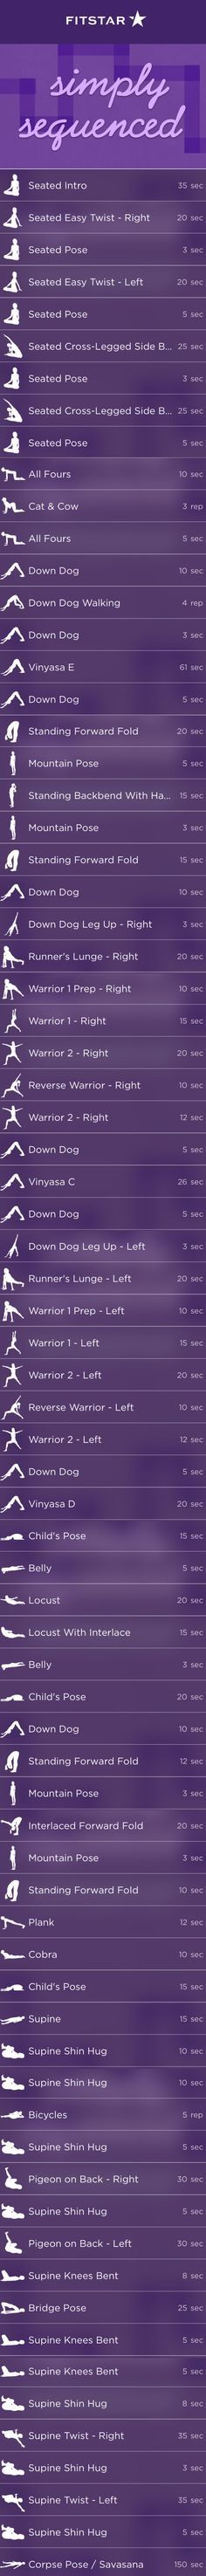 Wake Up or Wind Down with this FitStar Yoga Workout   Fitbit Blog